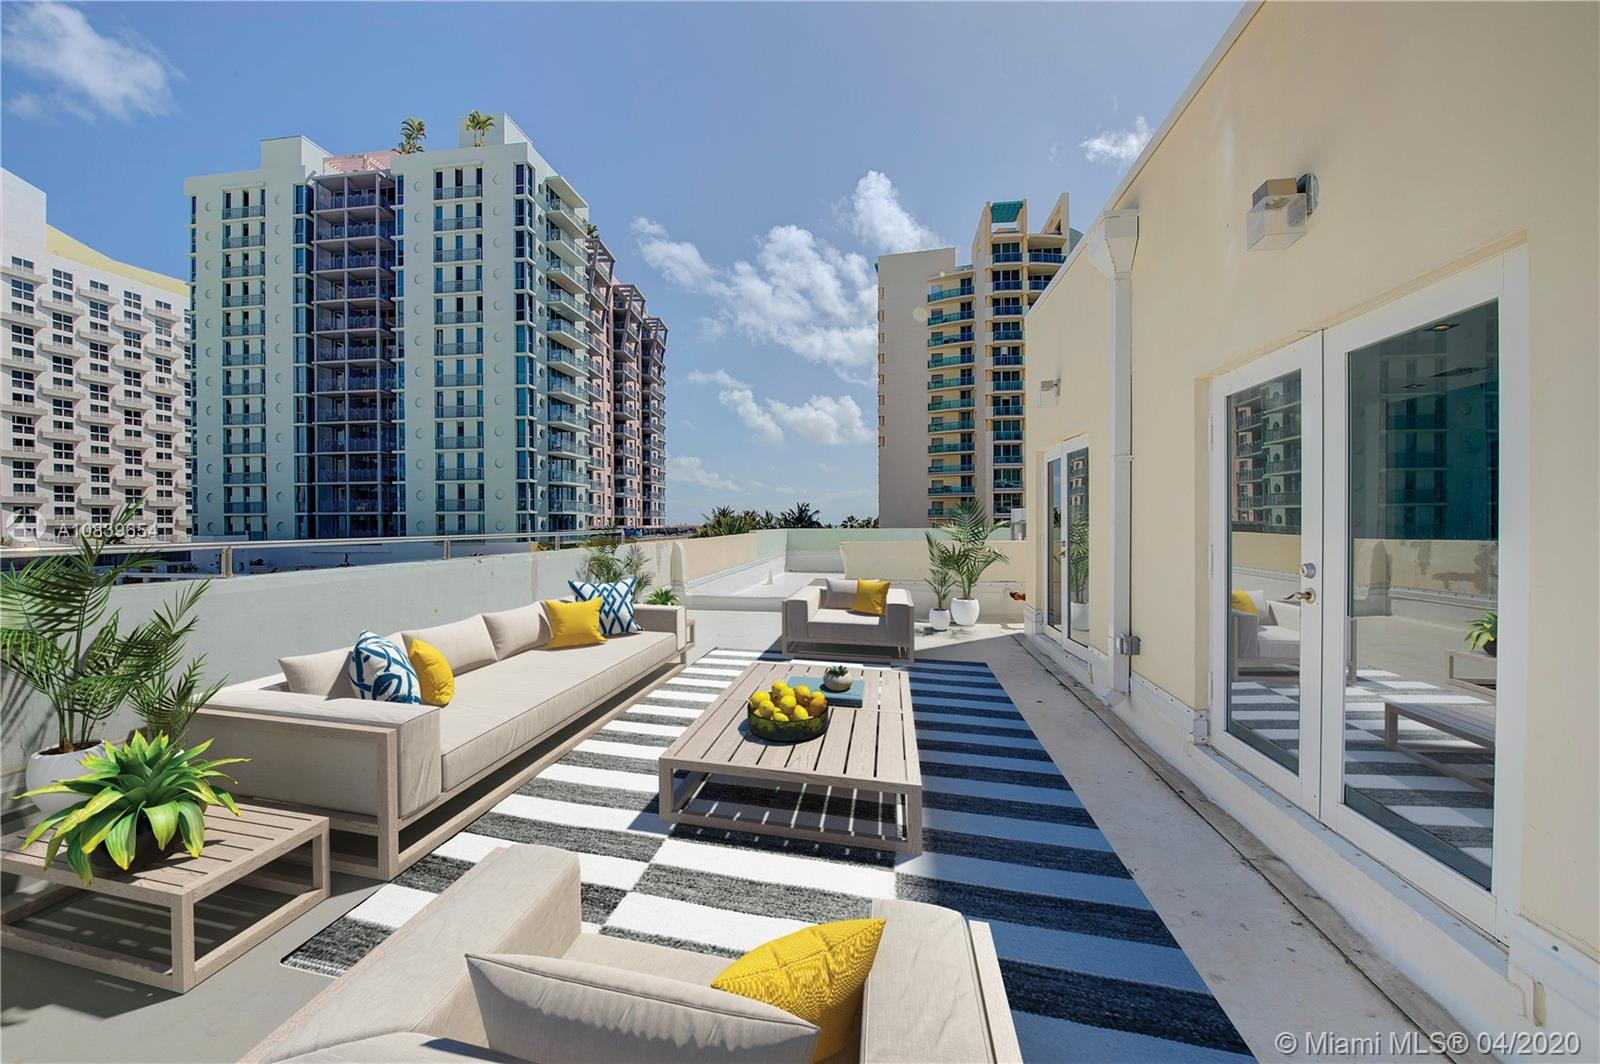 Rarely available, Ocean Drive South Beach 3 bed 2.5 bath brand new completely gut renovated from the studs out top floor 2 level corner unit with large private 1,000 sqft roof deck. Opposite the Ocean. New everything, never lived in since renovation just add your personal style to this chic blank canvas.